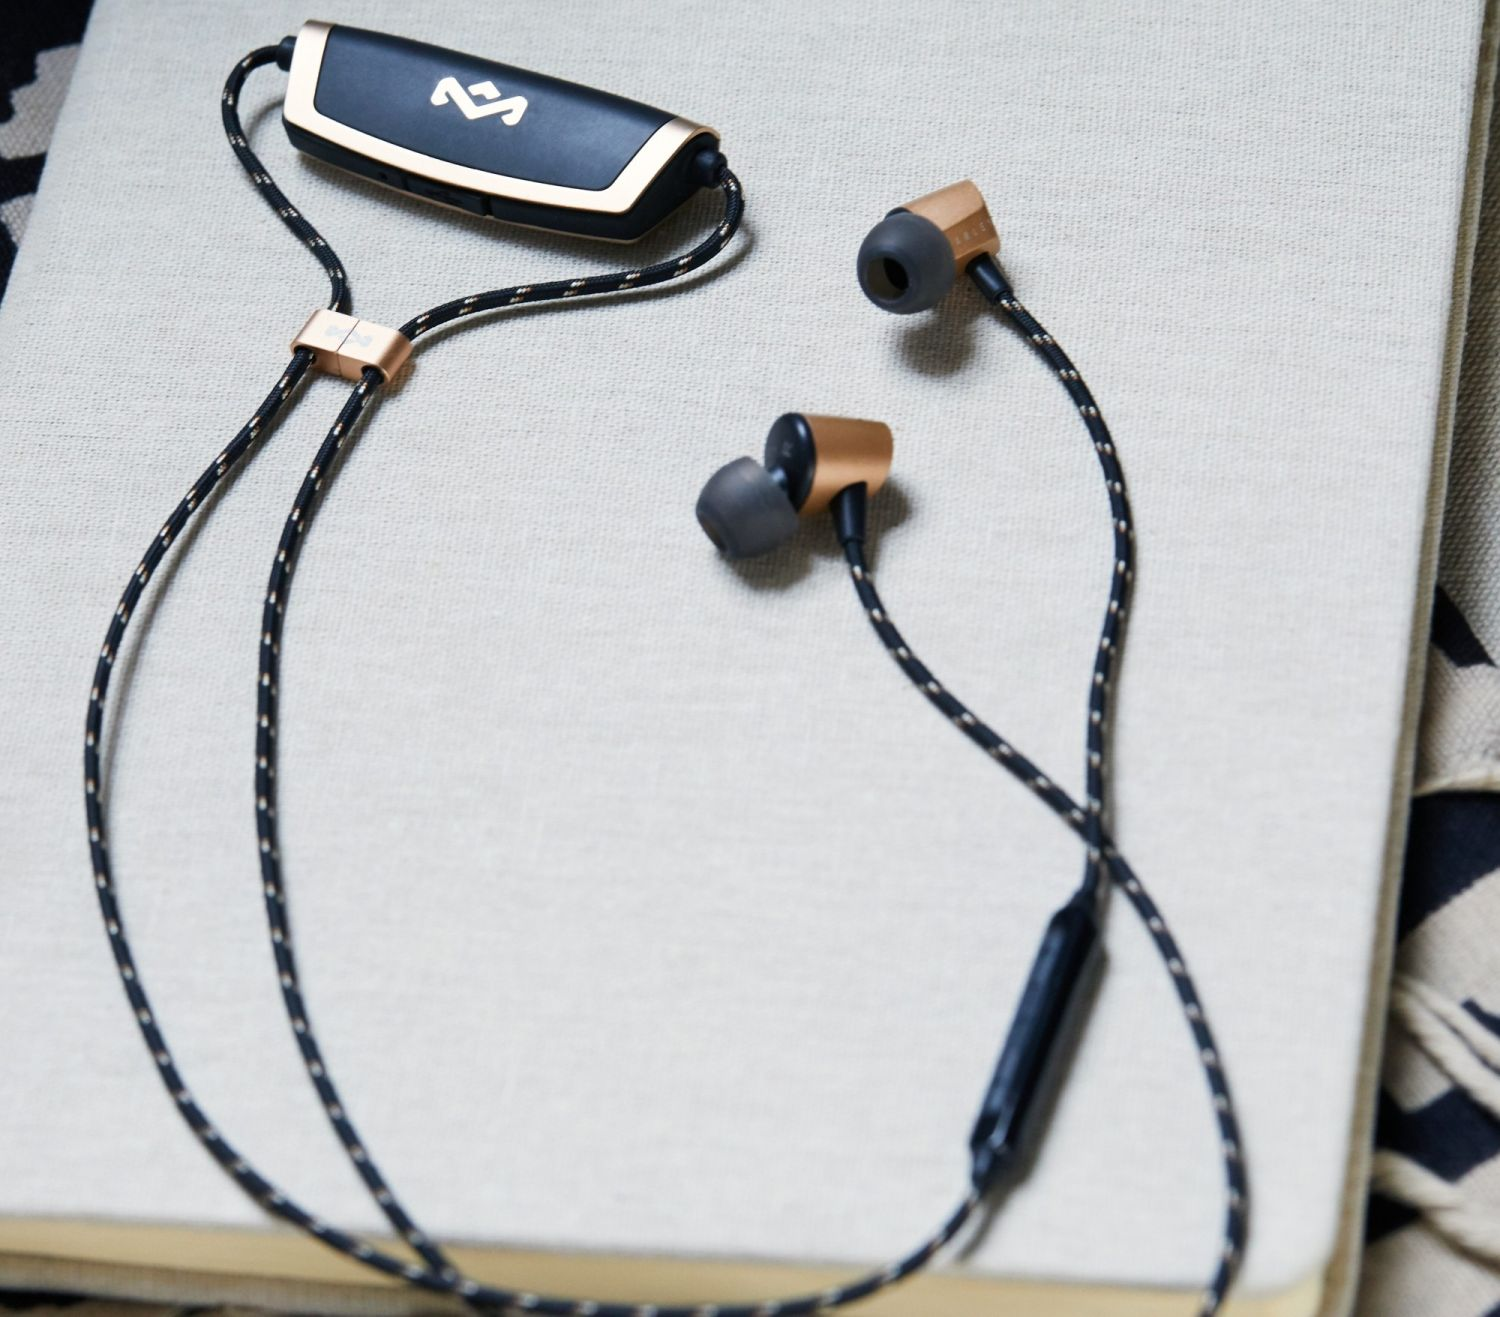 House of Marley Uplift 2 wireless